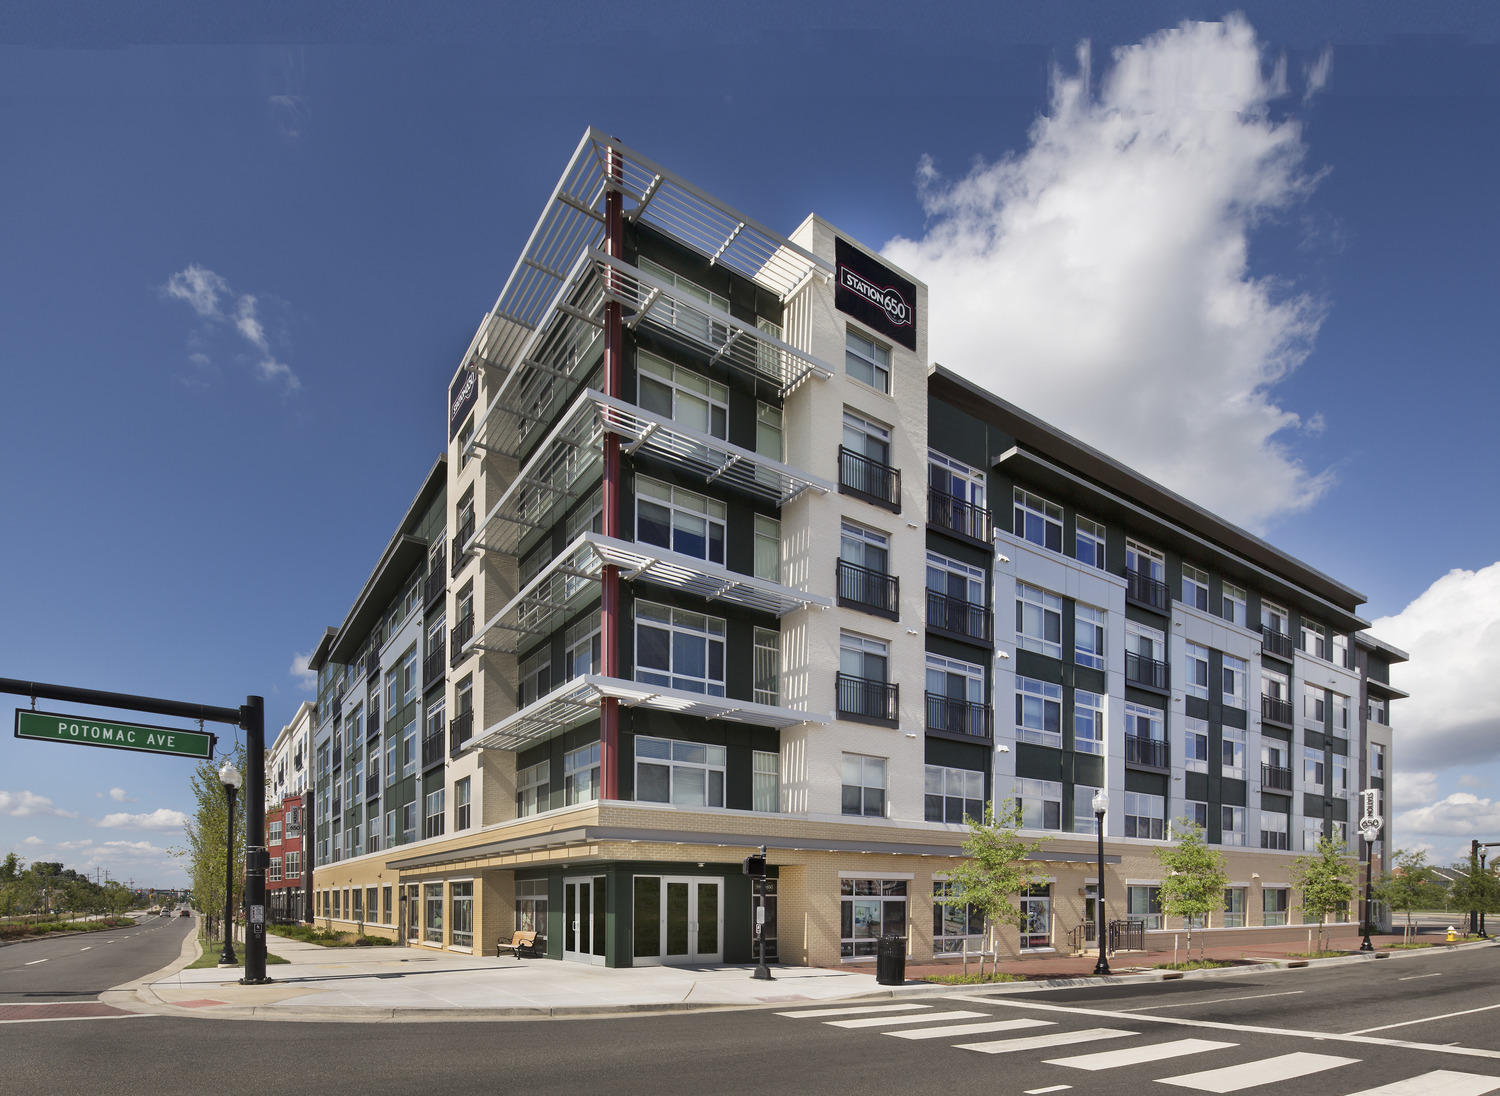 CBG builds Station 650, a 183-Unit Mixed-Use Apartment Building with Below-Grade Parking in Alexandria, VA - Image #1